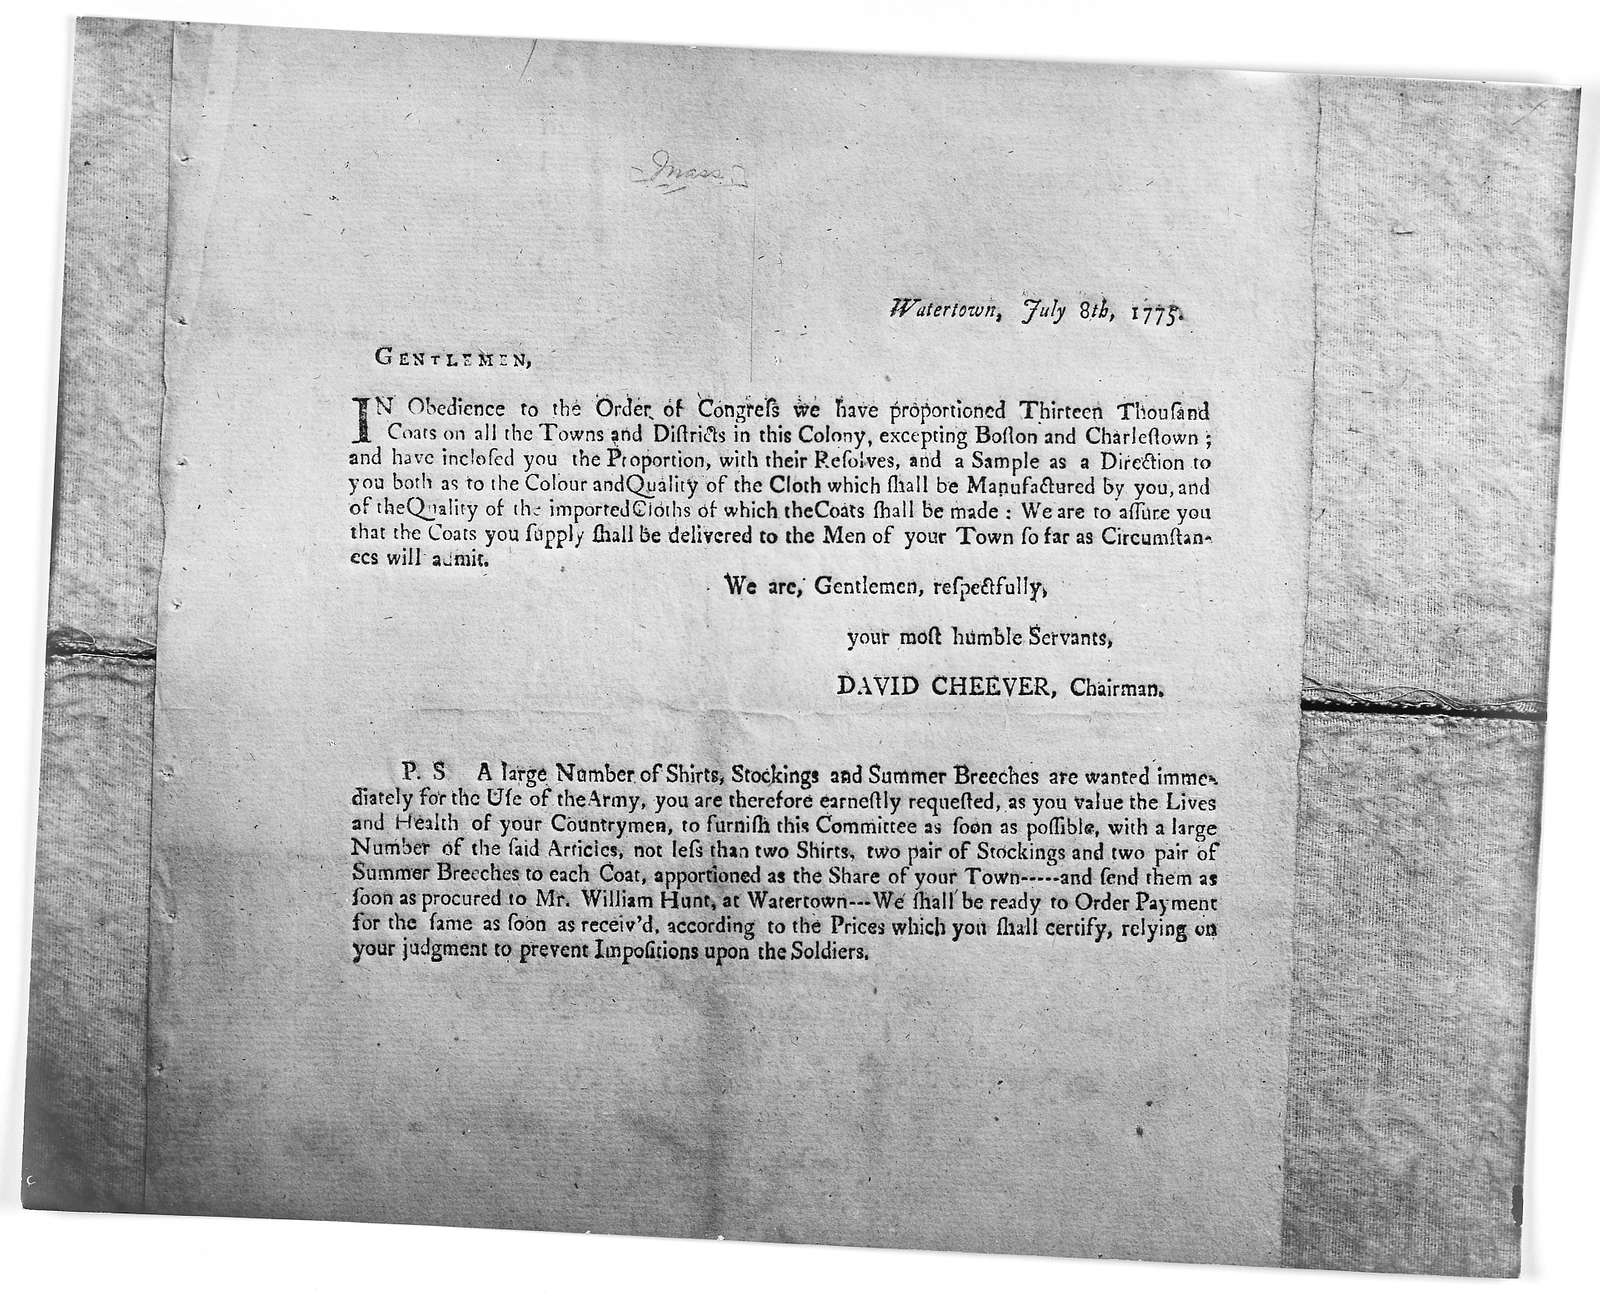 Watertown, July 8th, 1775 Gentlemen. In obedience to the order of Congress, we have proportioned thirteen thousand coats on all the towns and districts in this Colony, excepting Boston and Charlestown; and have inclosued you the proportion, with